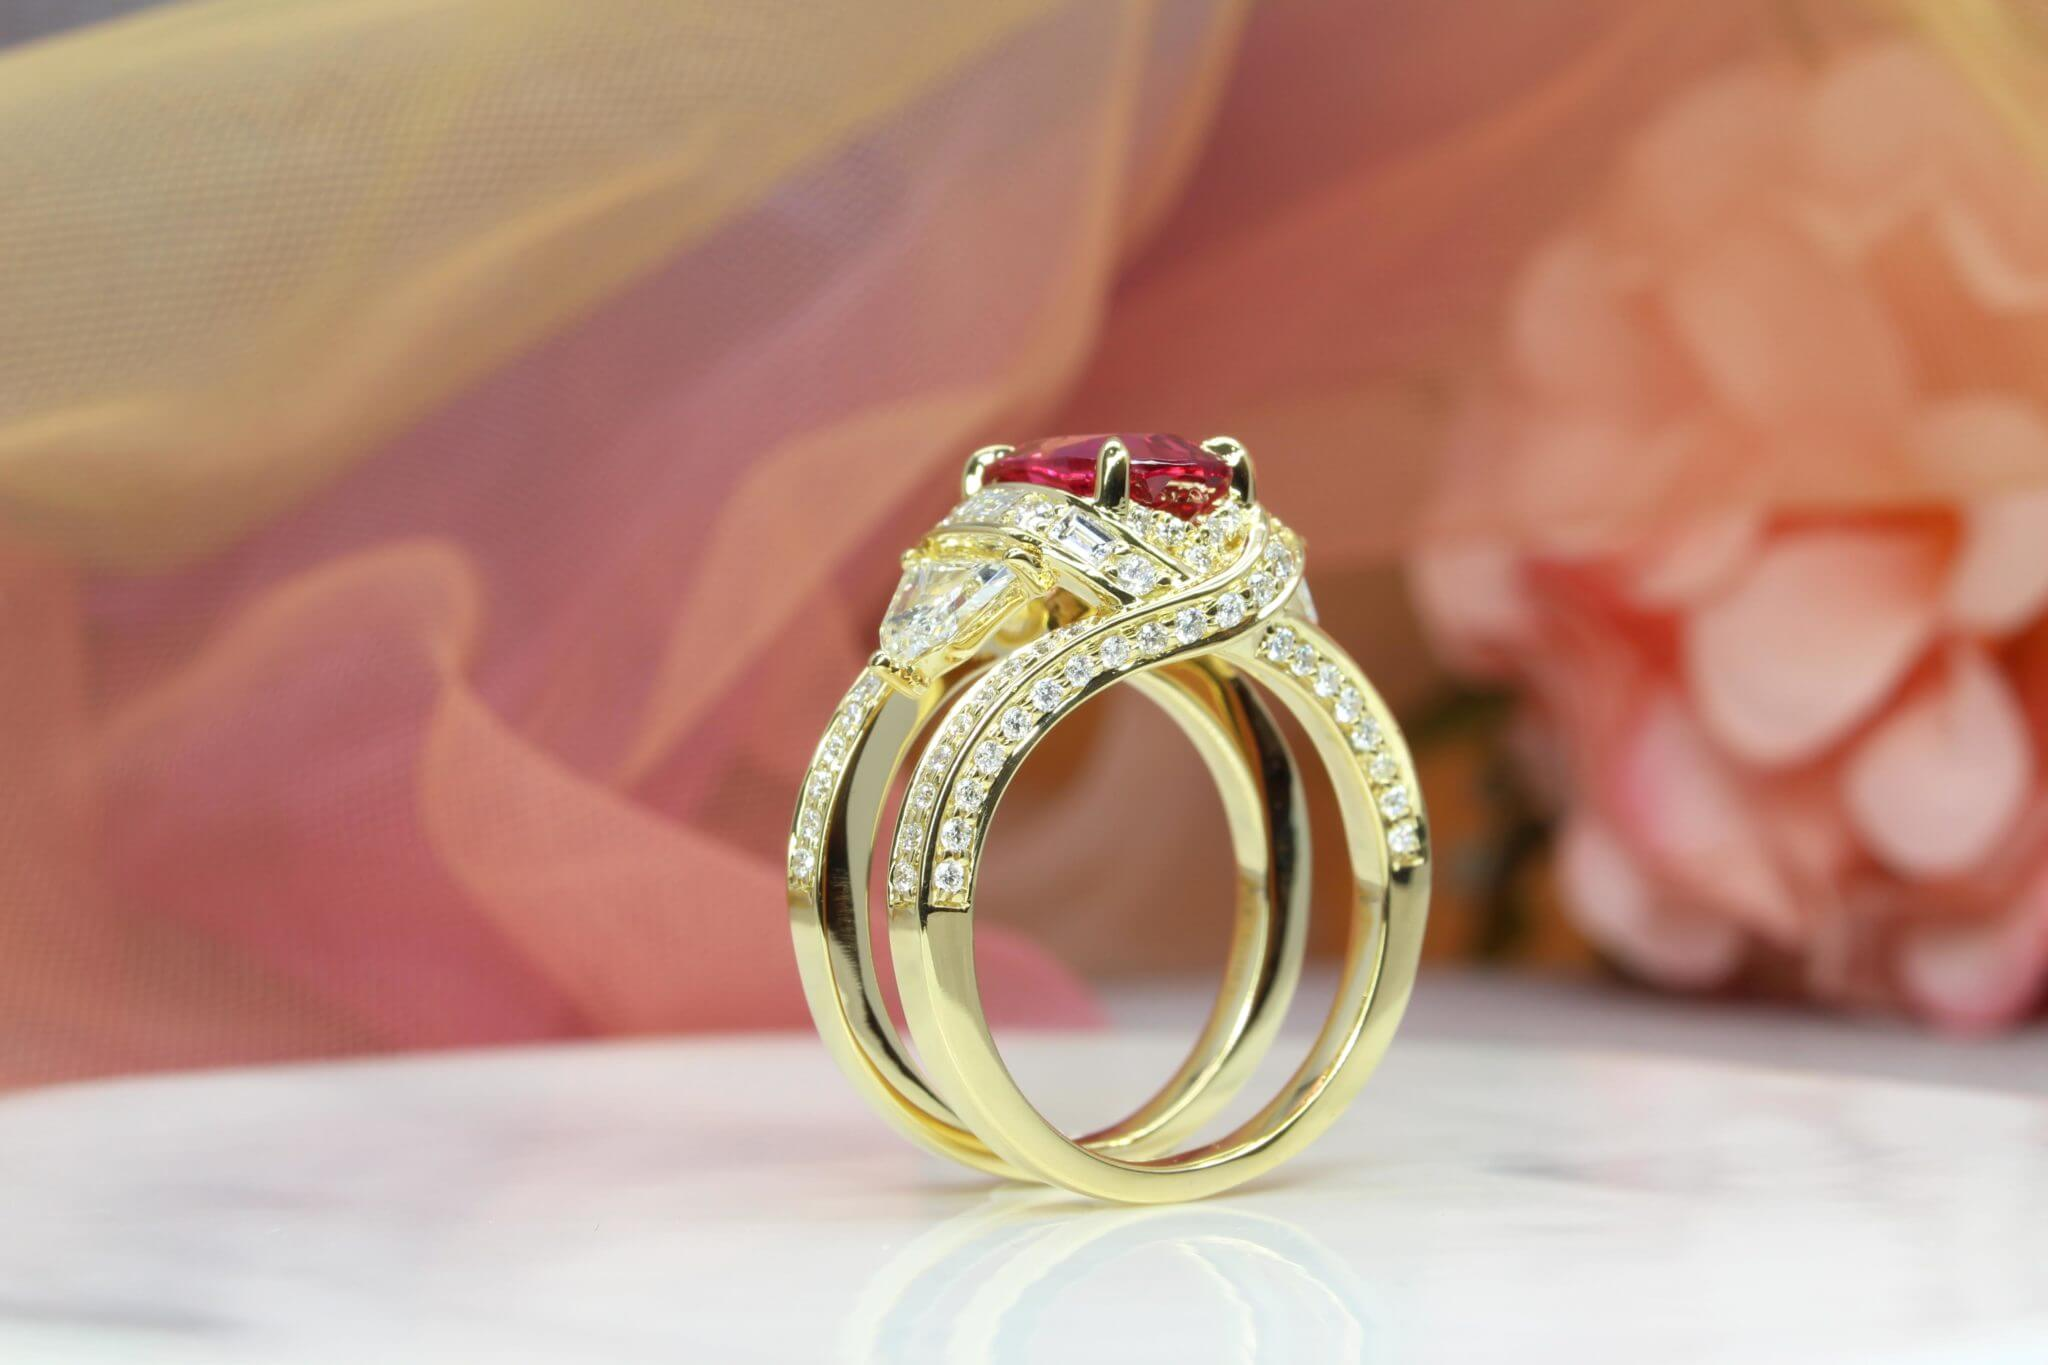 Mahenge Red Pink Spinel Gemstone customised with chevron, baguette and brilliant round diamonds. Mahenge spinel is found in Tanzania, one of the most sought after colour of spinel in the world | Local Singapore Bespoke Ring and Jewellery Designer